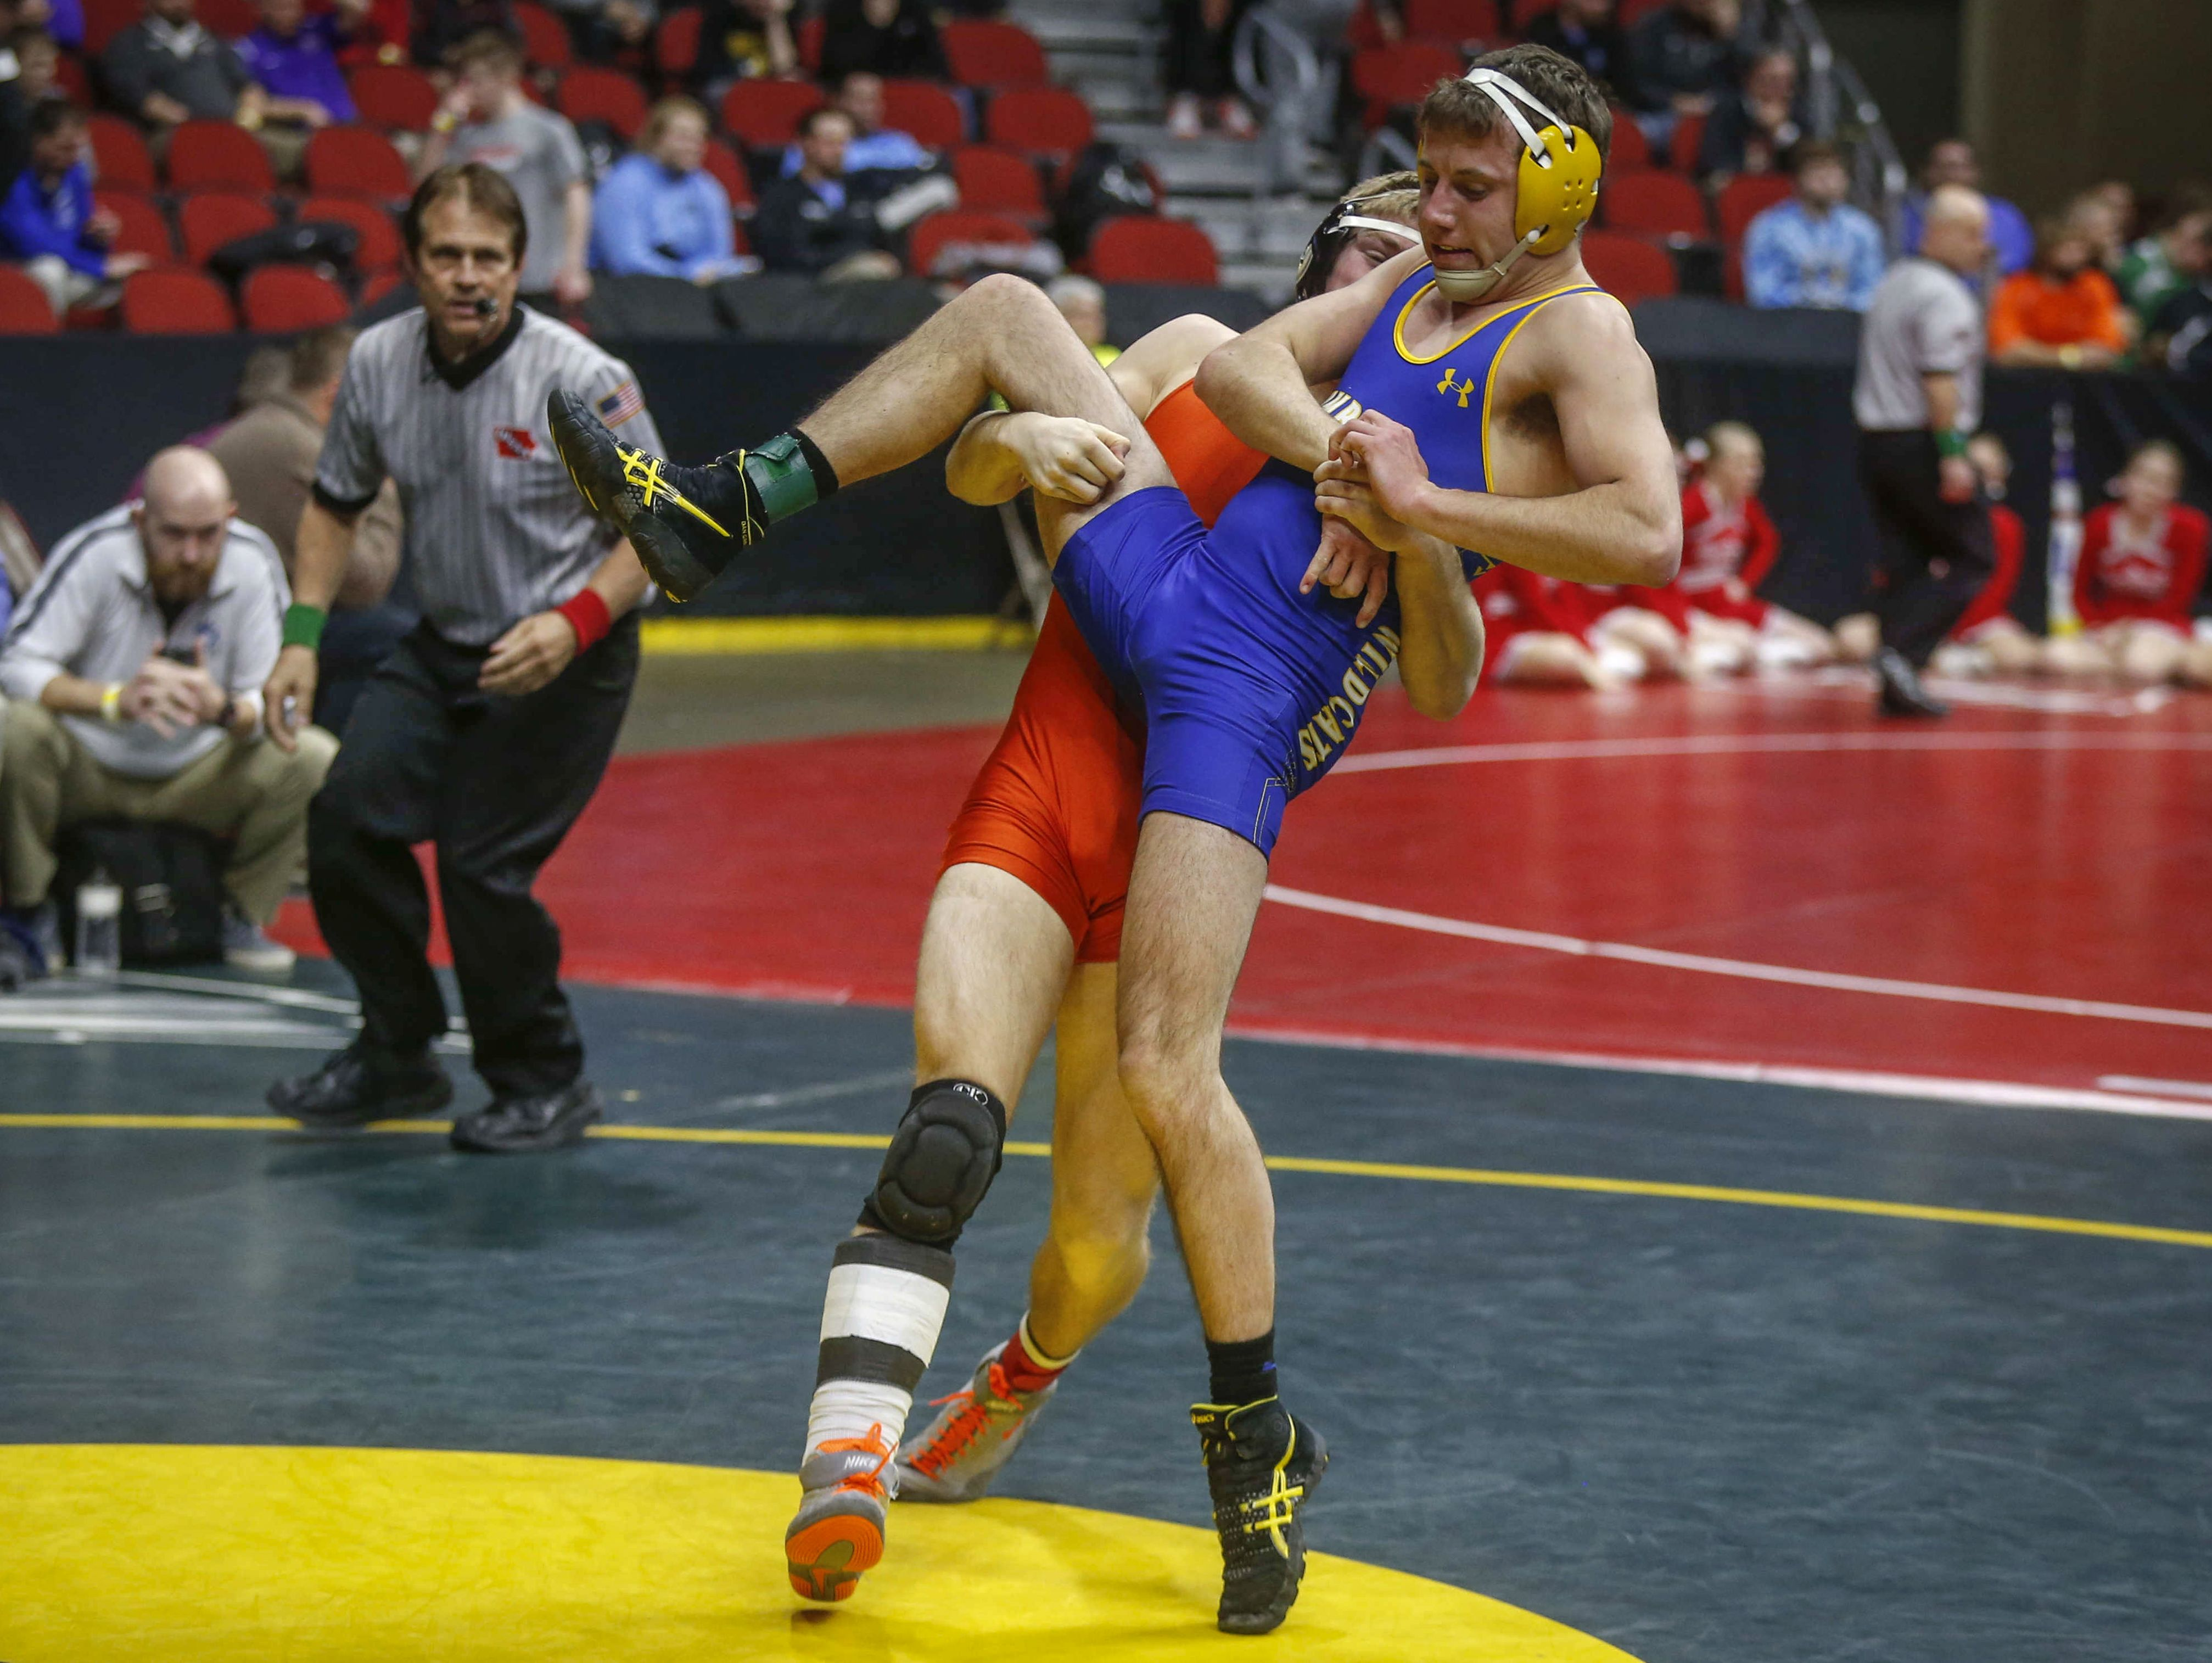 Solon senior Graeson Dall lifts Humboldt senior Jaden Kampen in their match at 152 pounds on Thursday, Feb. 16, 2017, during the Iowa Class 2A state wrestling tournament at Wells Fargo Arena in Des Moines.